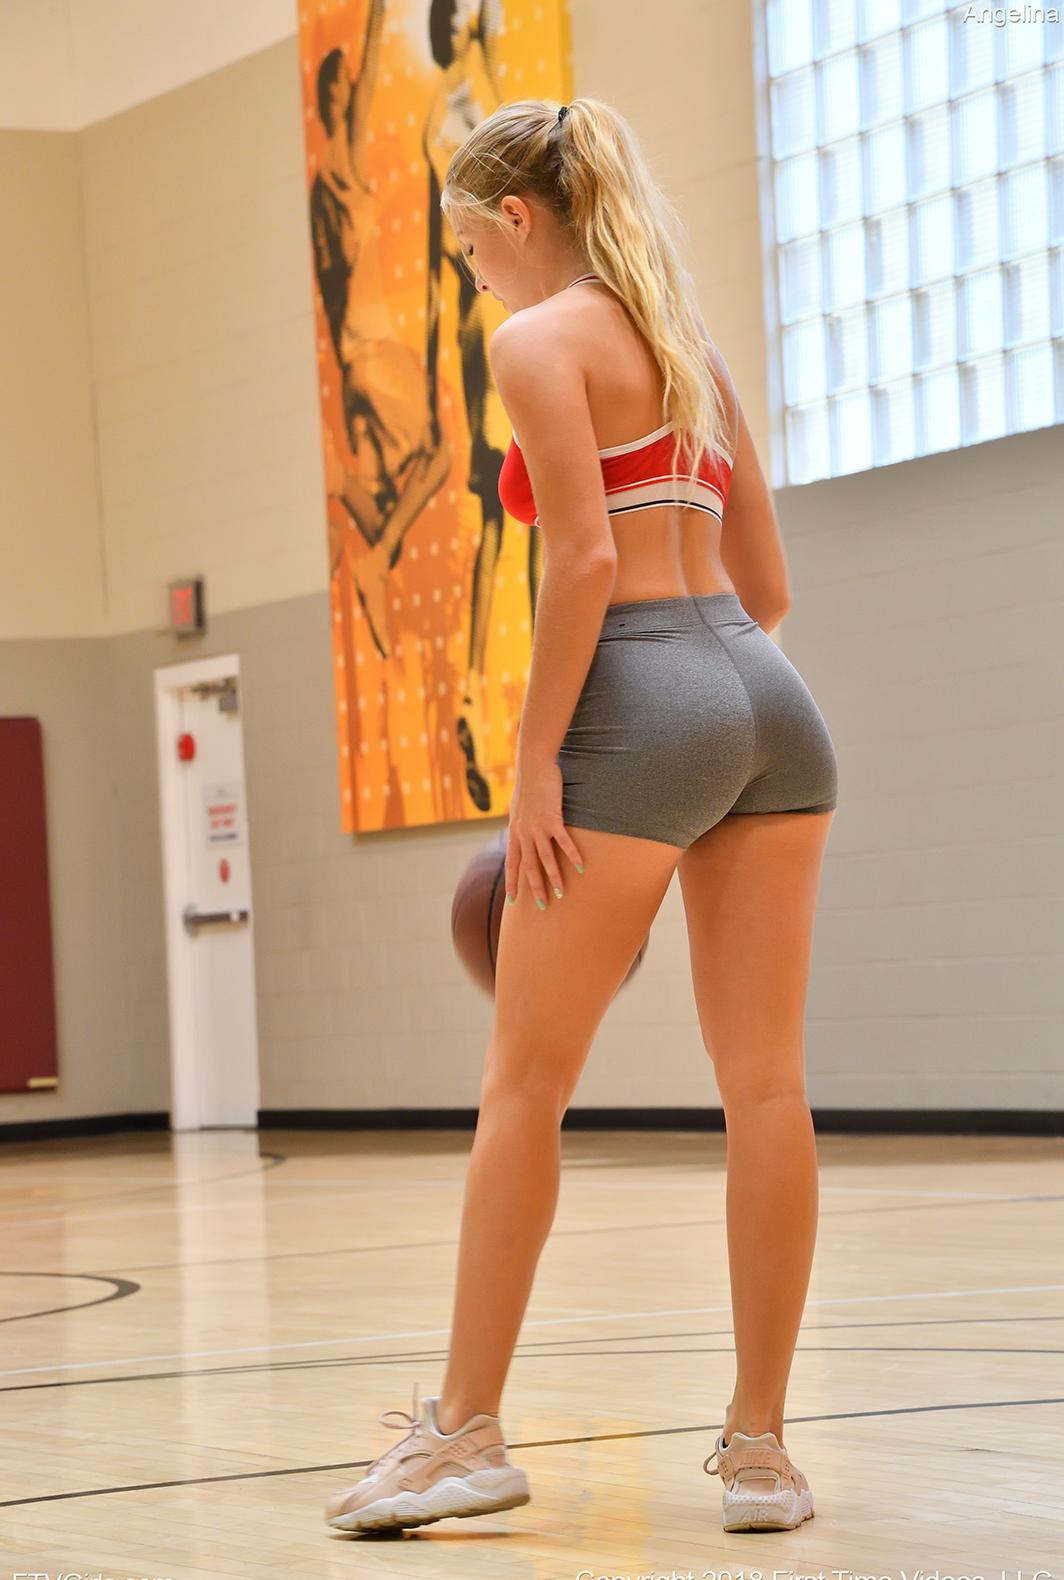 Angelina-II in Hottie At The Gym photo 3